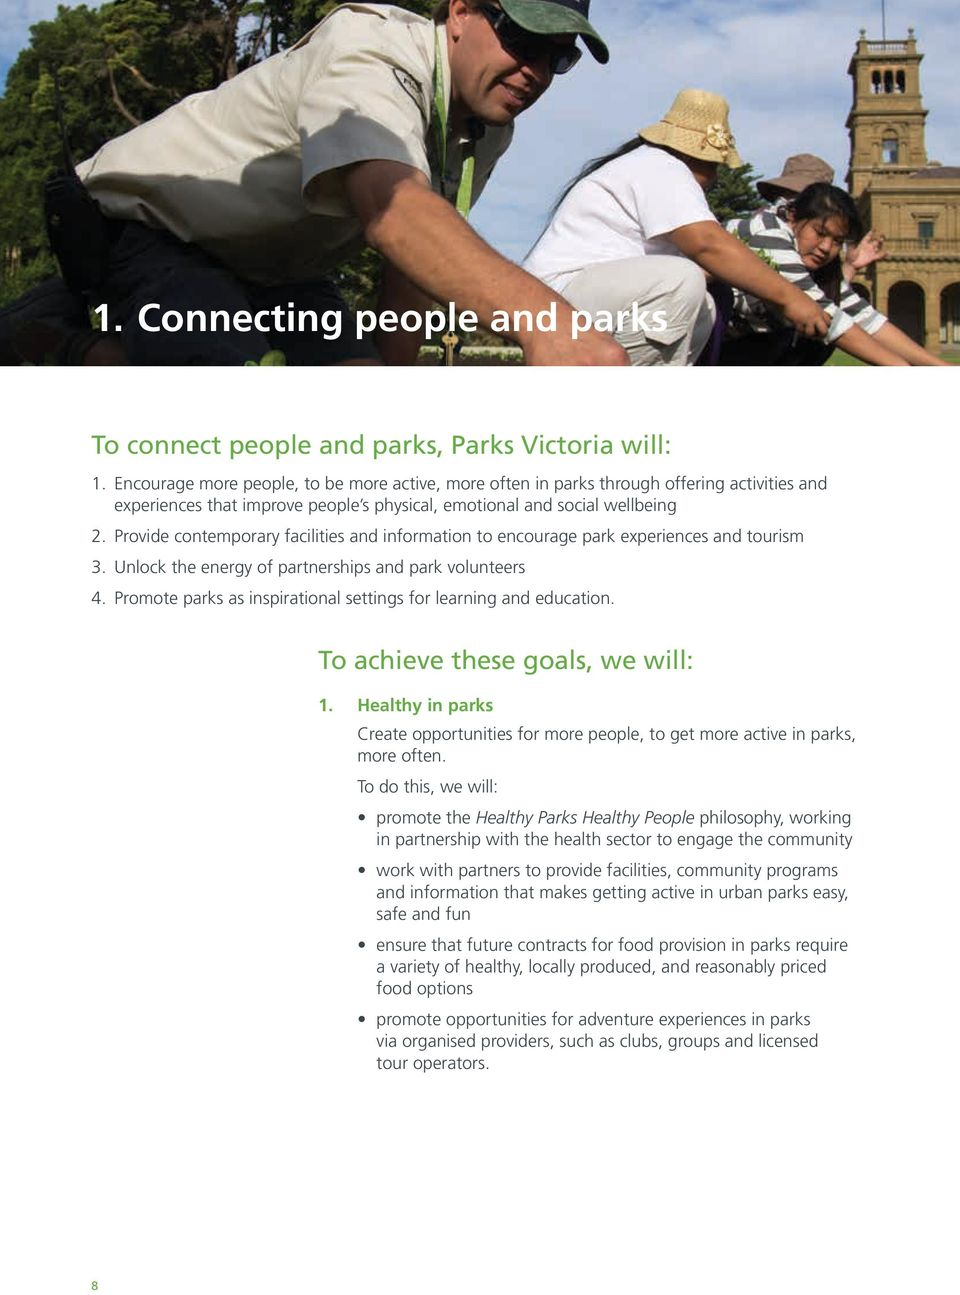 Provide contemporary facilities and information to encourage park experiences and tourism 3. Unlock the energy of partnerships and park volunteers 4.